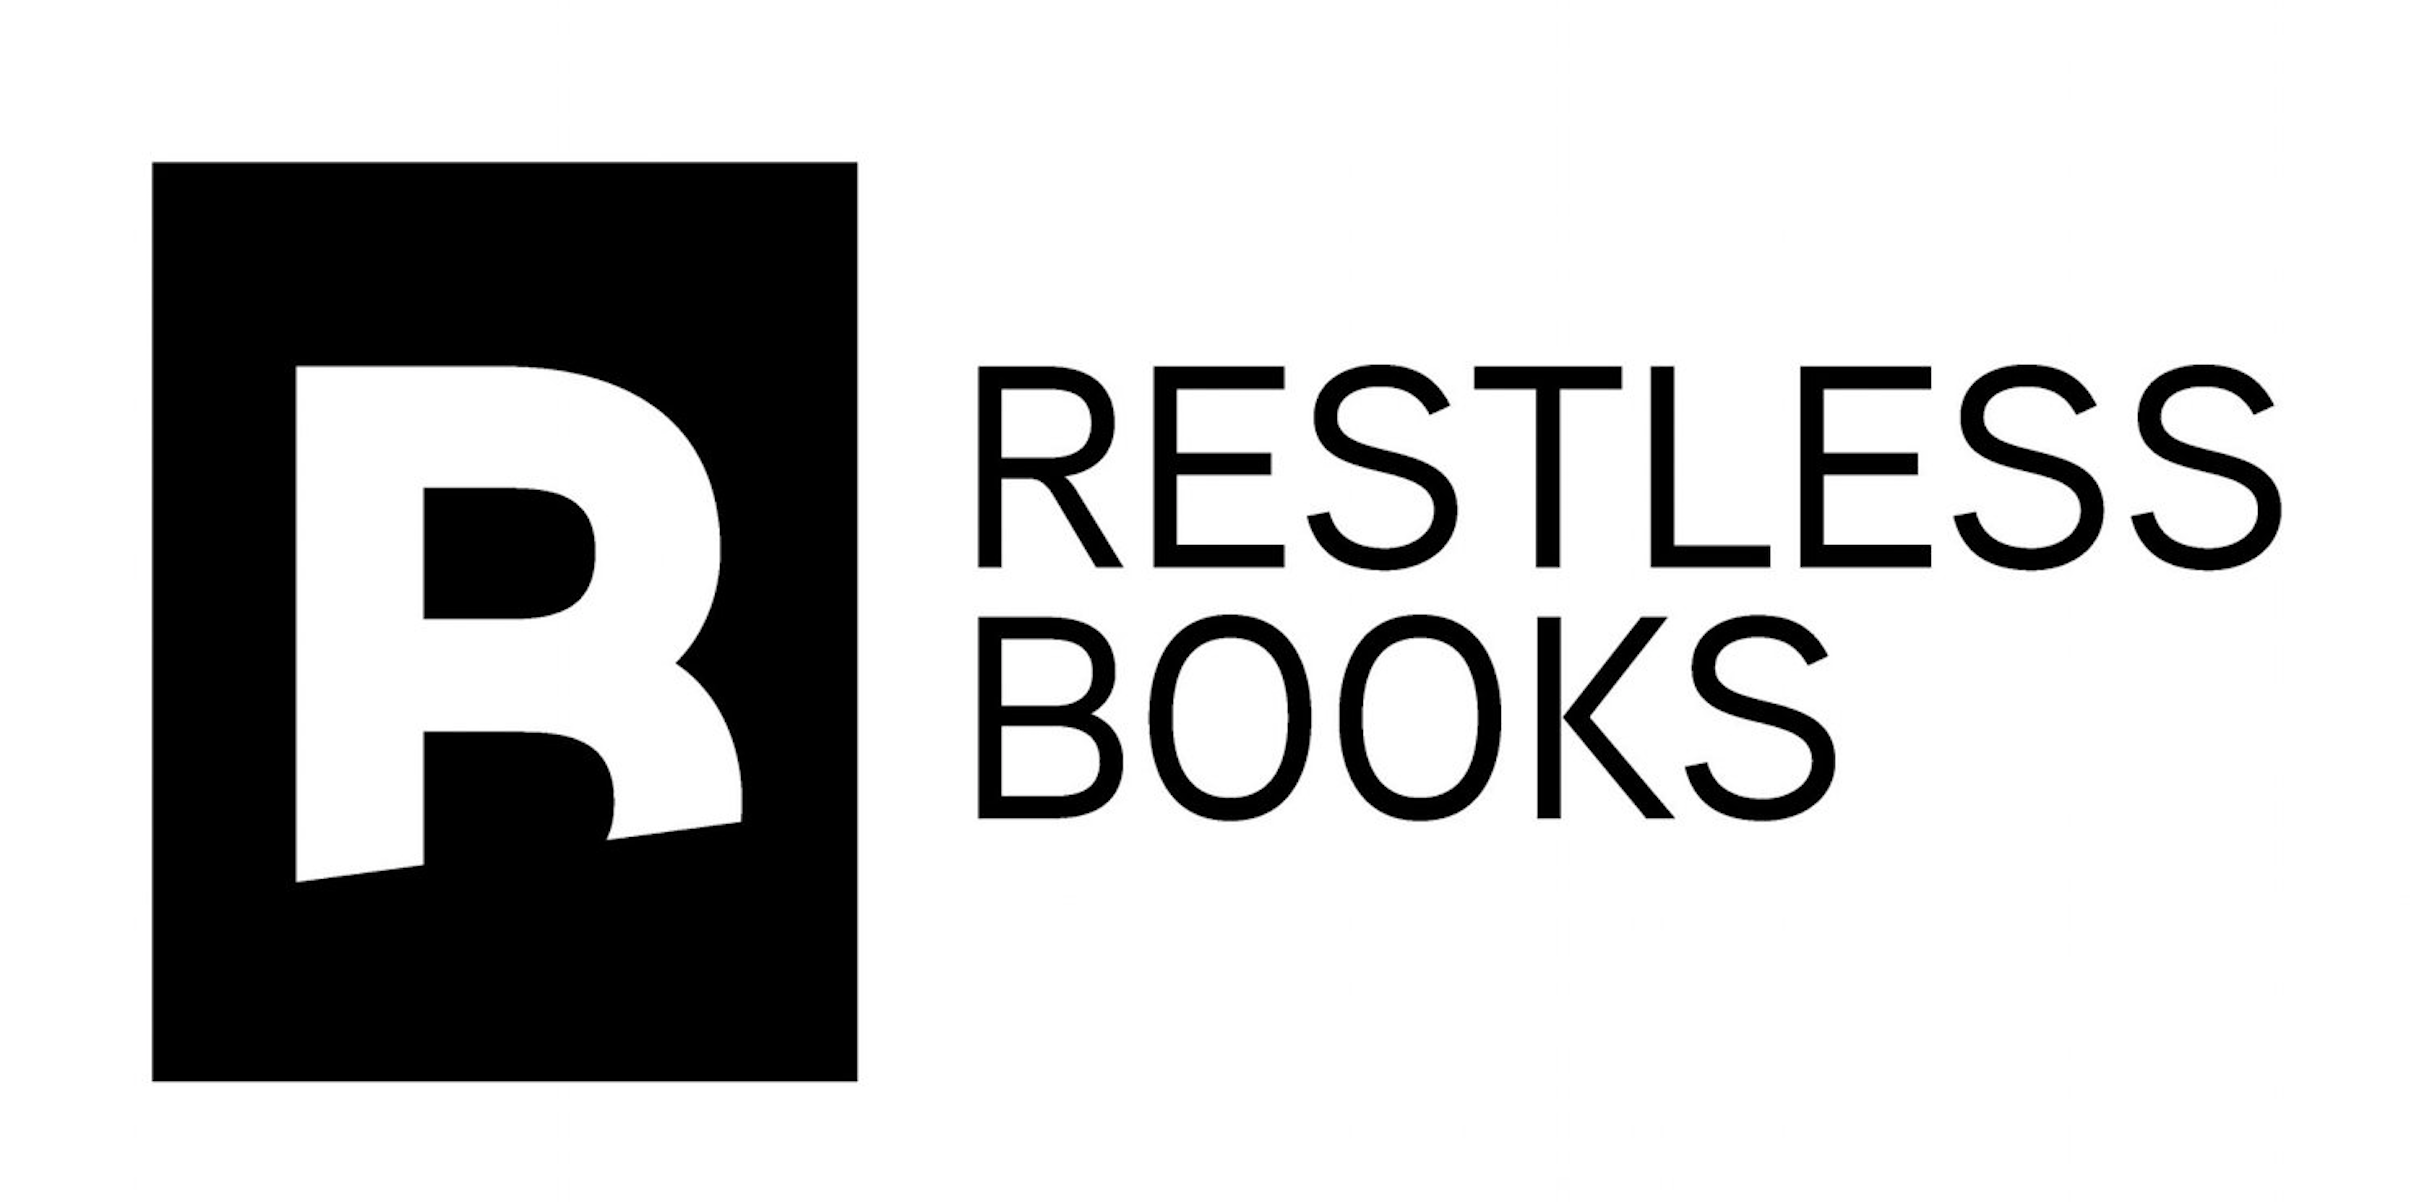 Restless Books logo, featuring the letter R in a black box